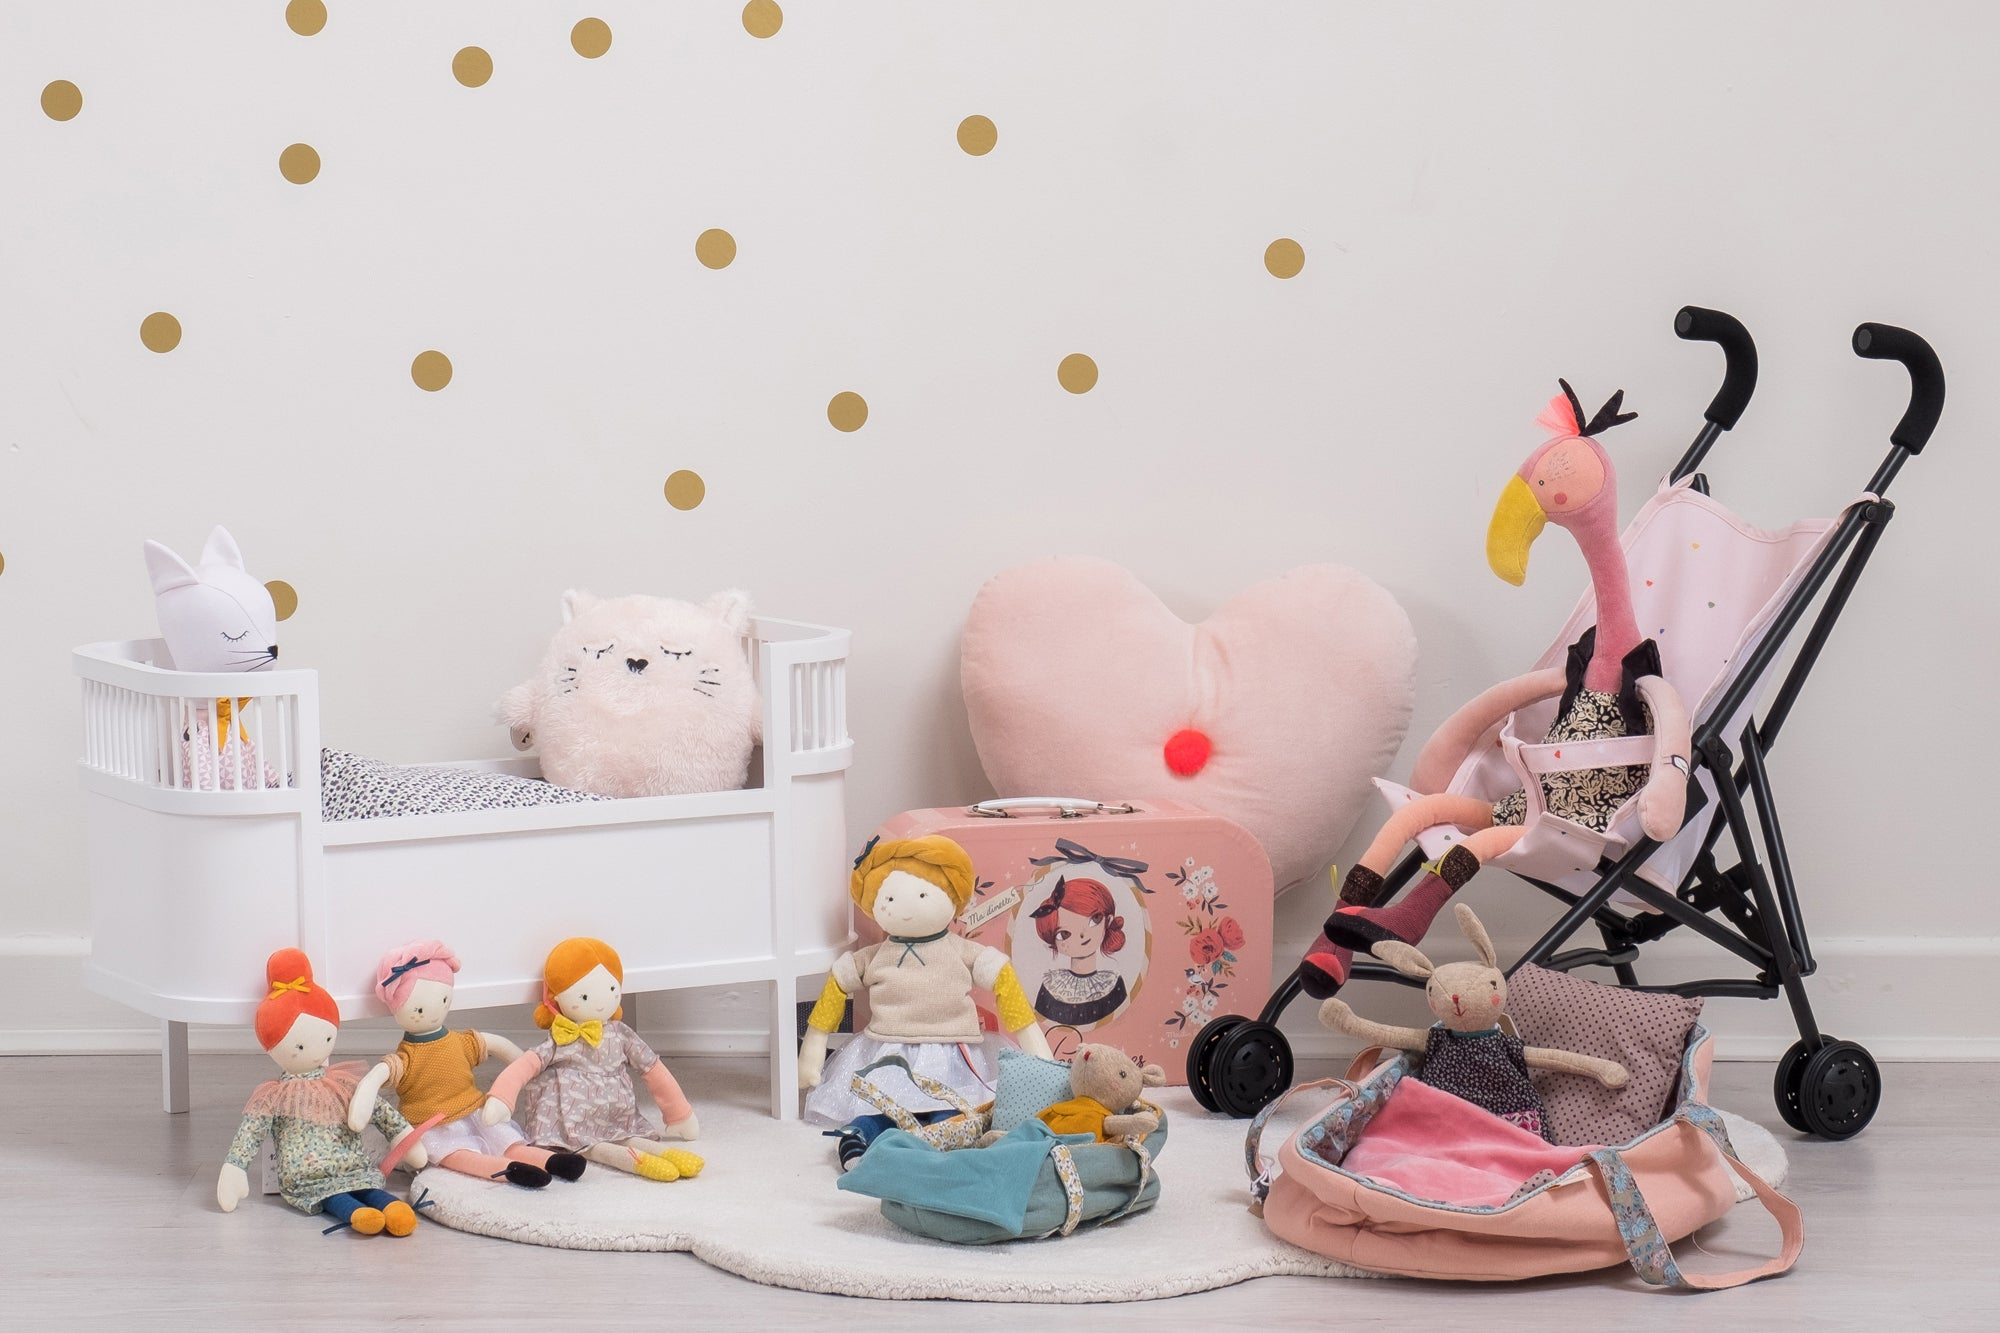 Toys and children's bedroom accessories, styled by Bobby Rabbit.